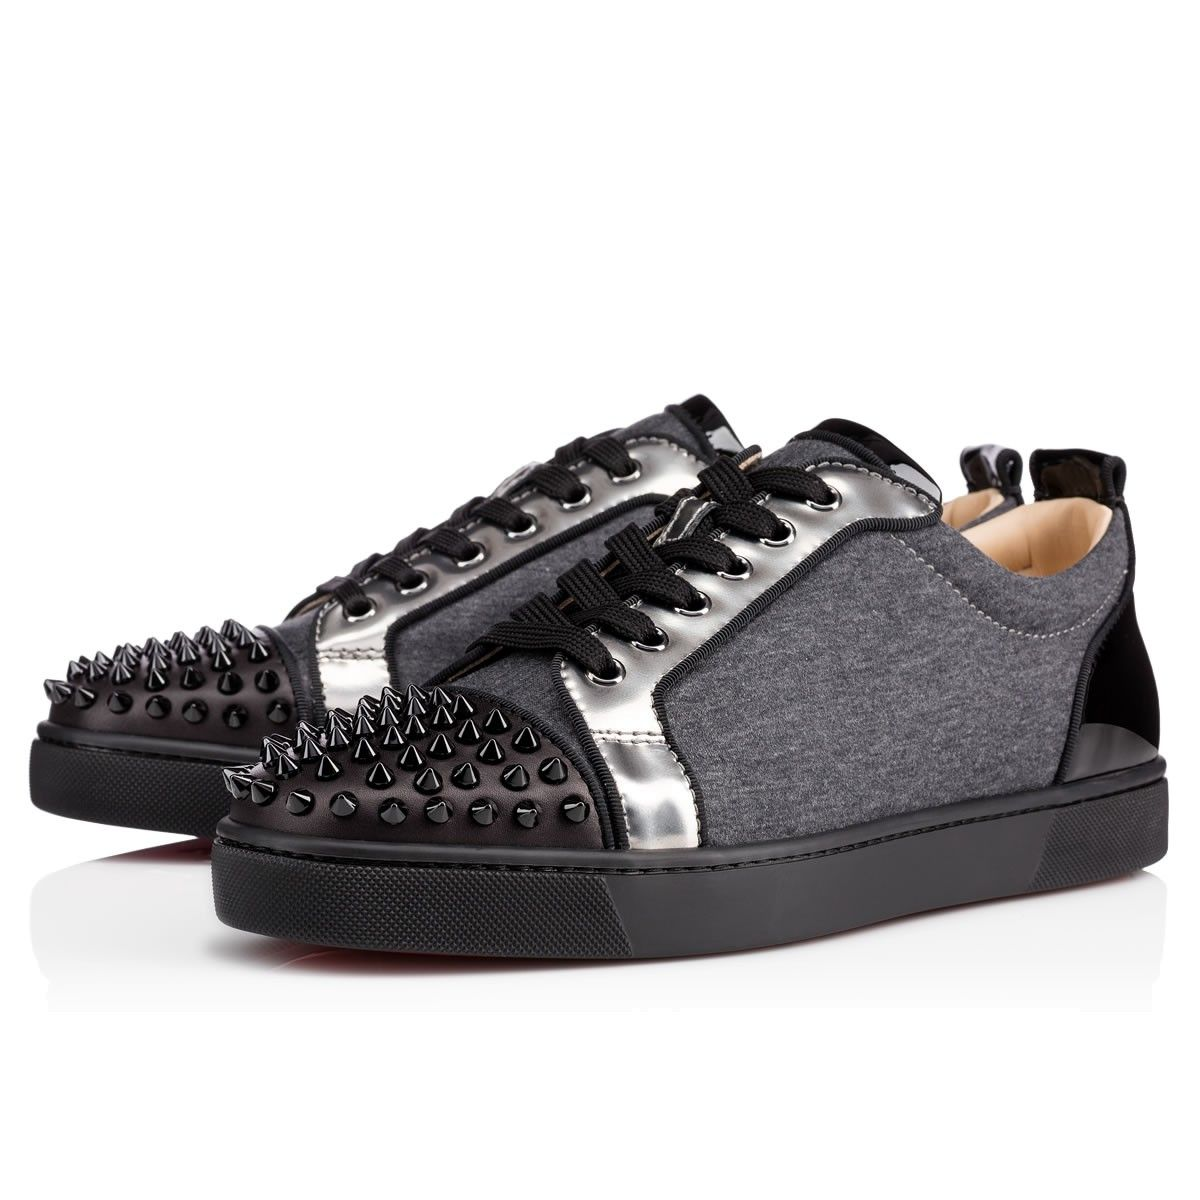 Explore Shoes 2015, Christian Louboutin Shoes, and more!